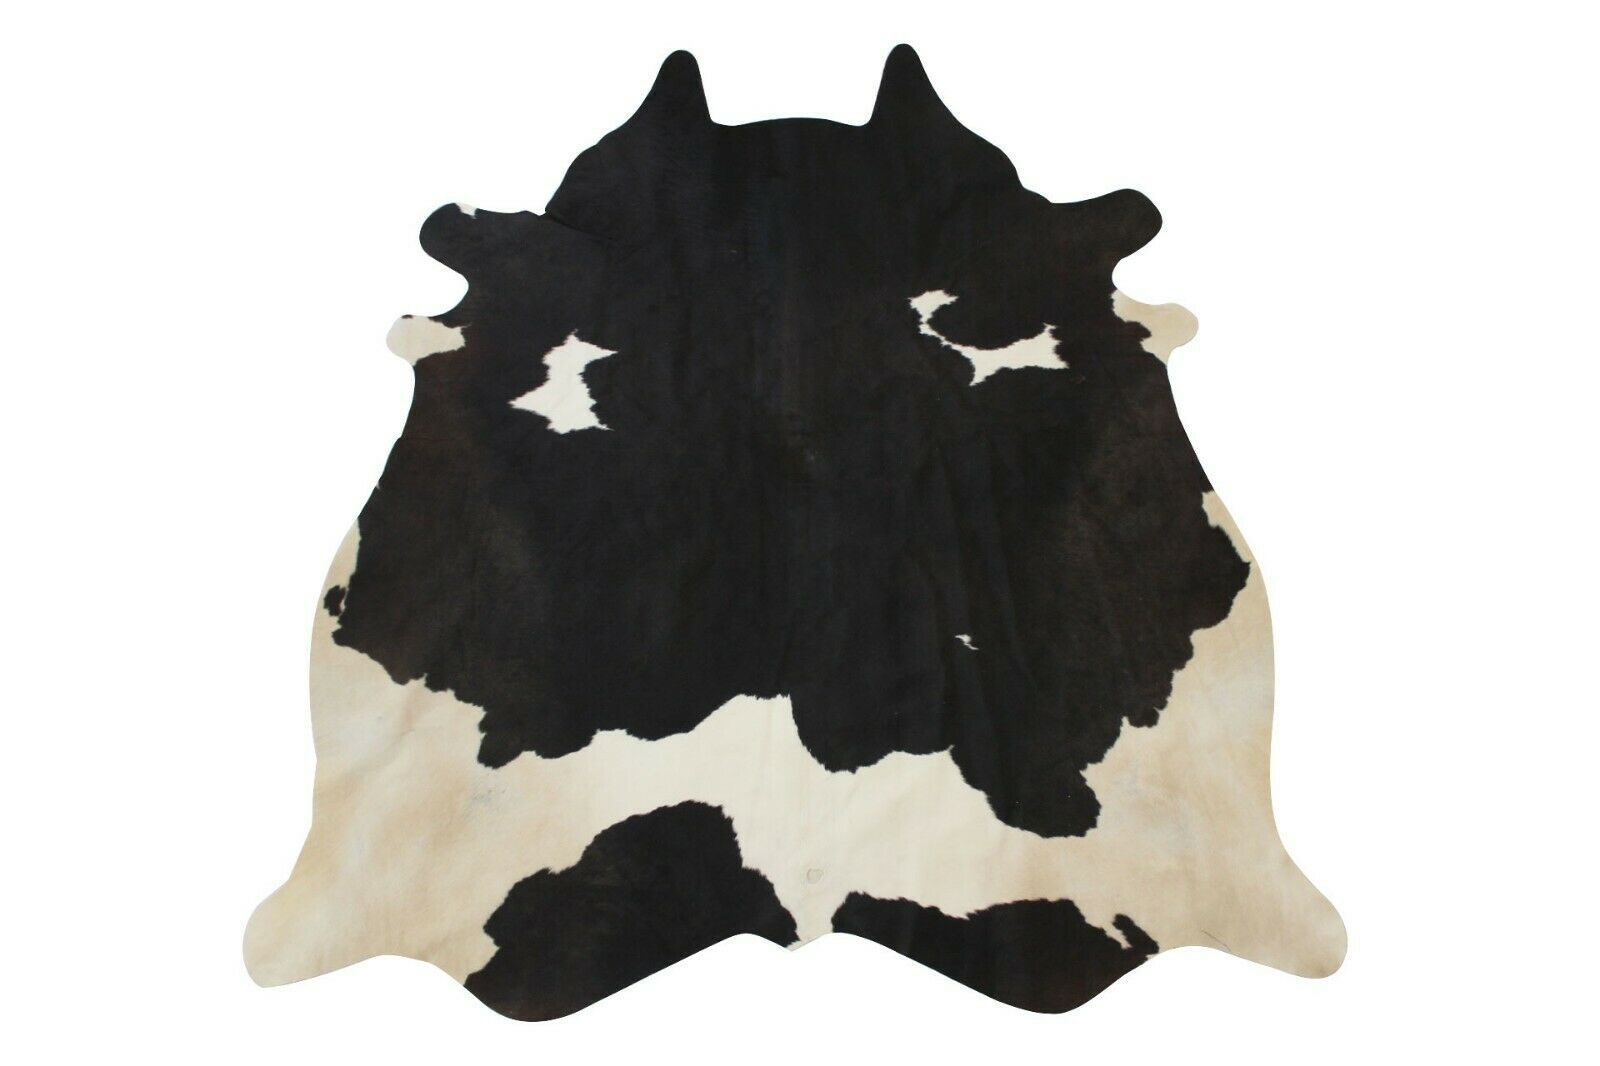 Brazilian Black And White Cowhide Rug 30 Sq Ft Solid Leather Pattern Sale Price White Cowhide Rug Cow Hide Rug Cow Skin Rug